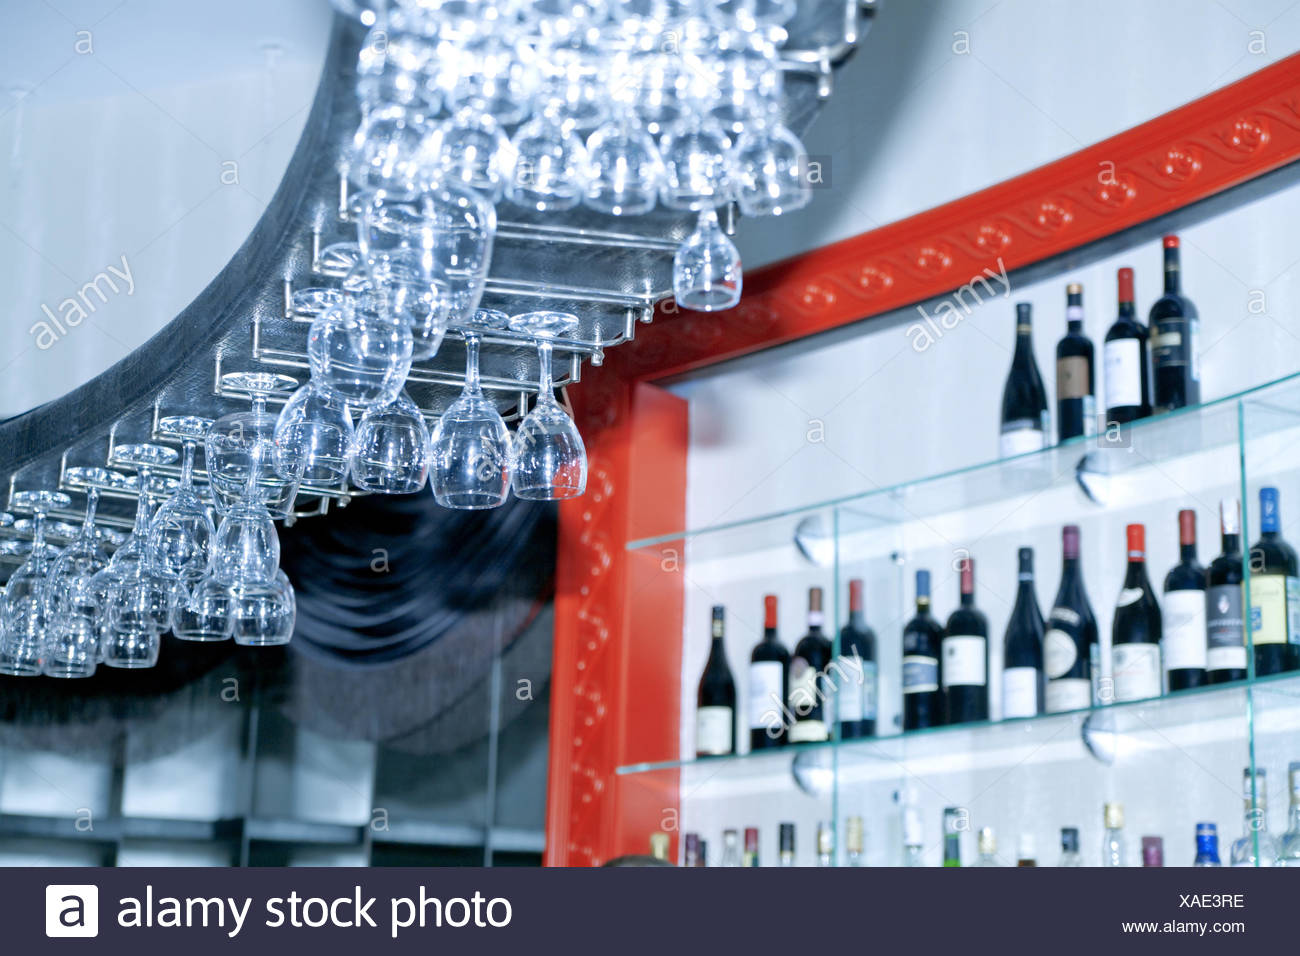 bar with drinks and glasses - Stock Image